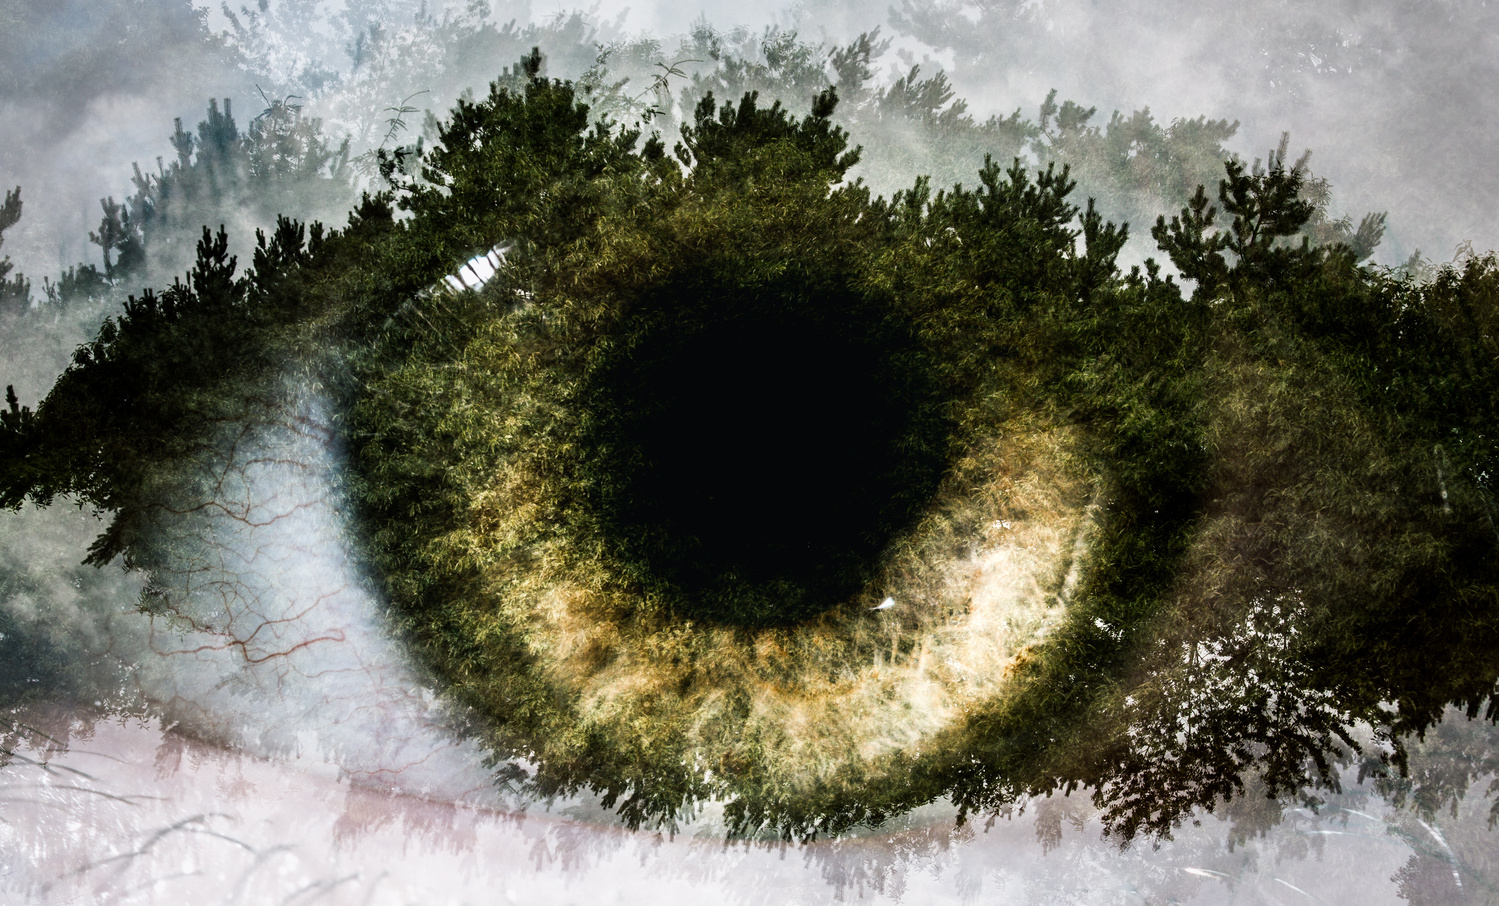 Eyes - The Forest by Ben Dauré